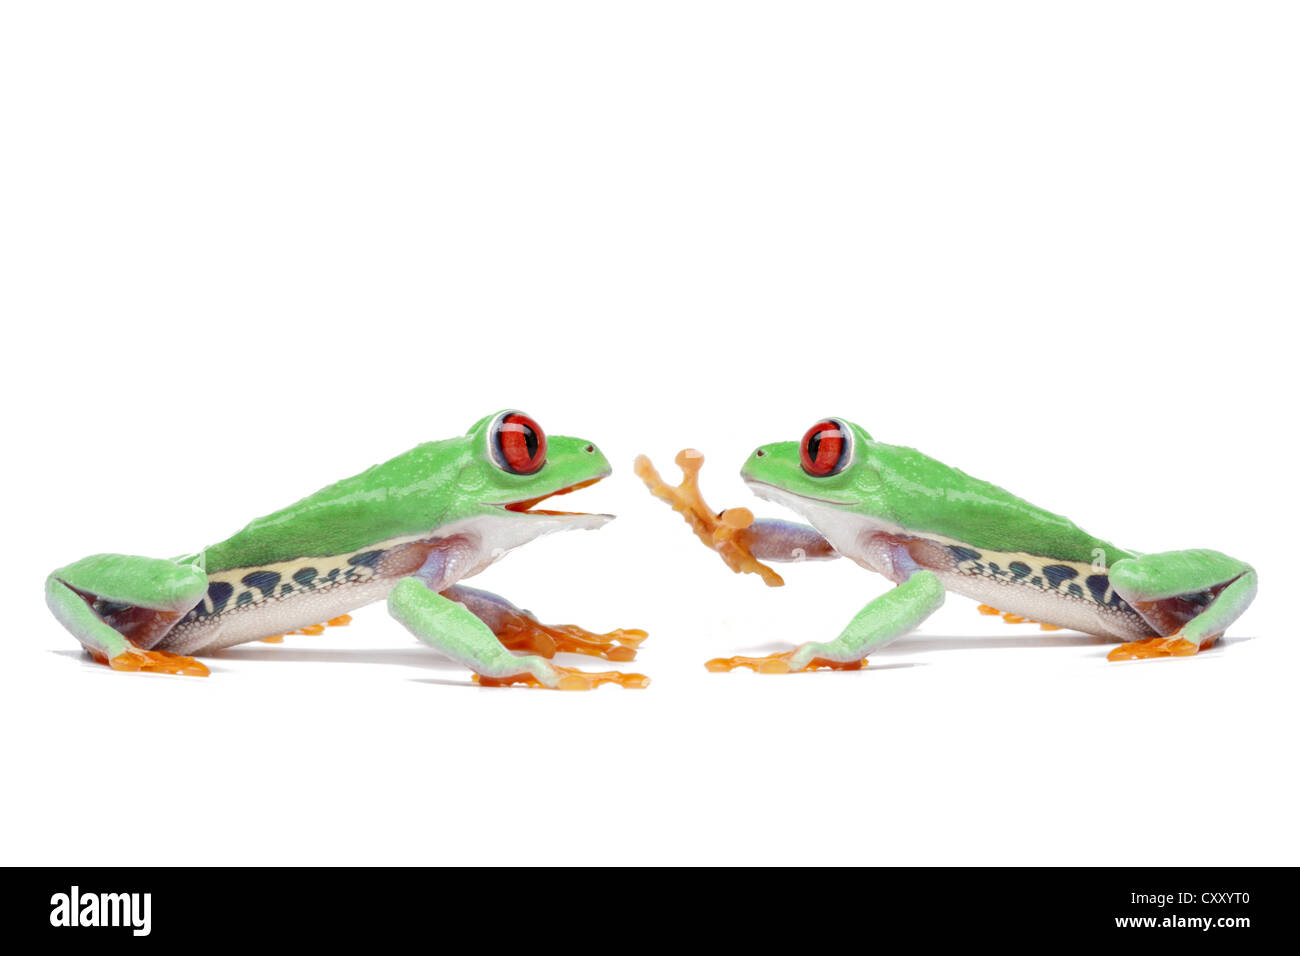 Two Red-eyed Tree Frogs (Agalychnis callidryas) sitting opposite one another Stock Photo